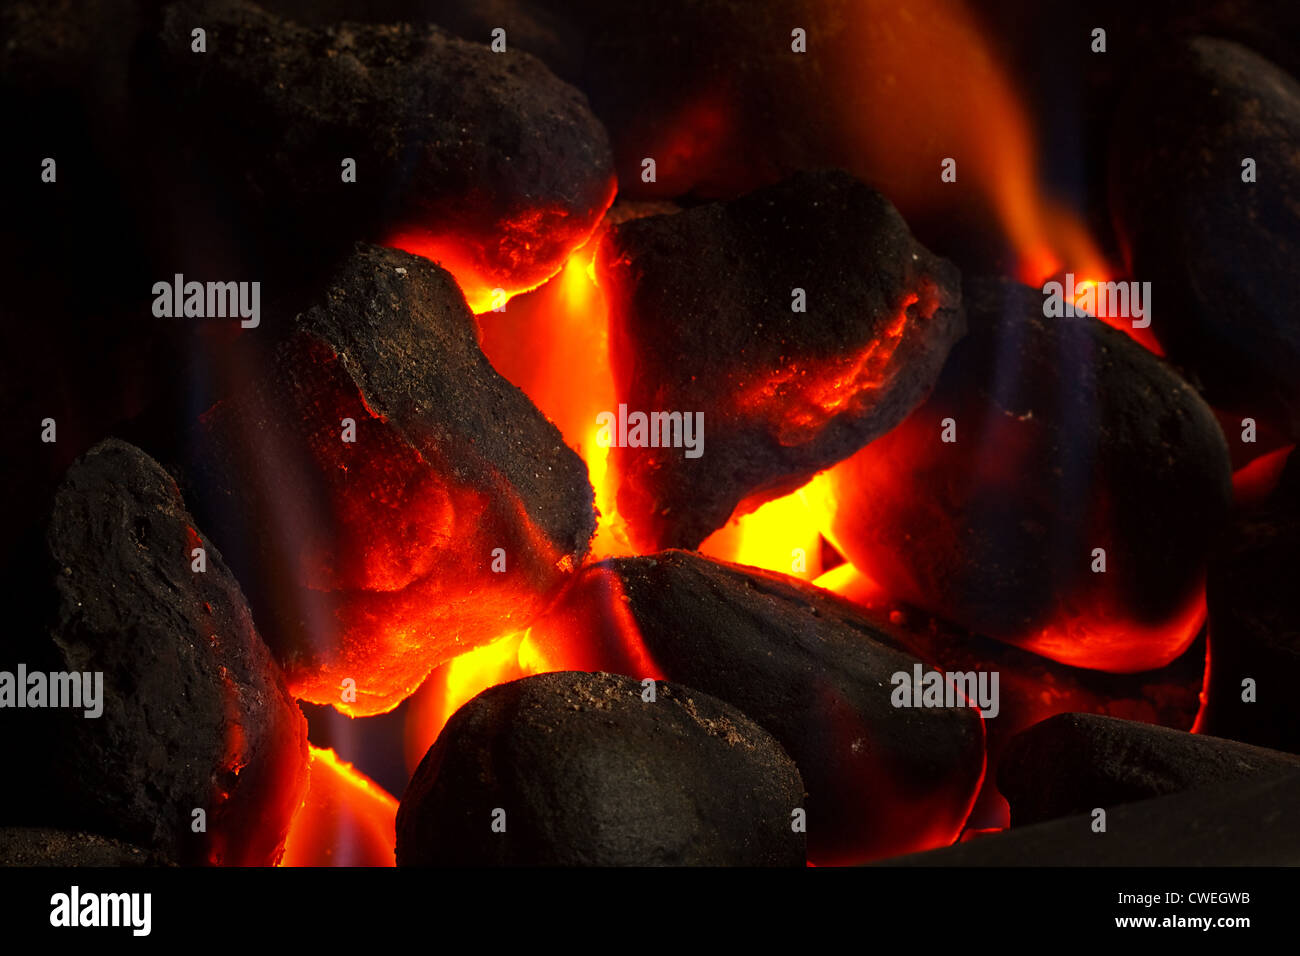 Imitation coal fire, powered by gas supply - Stock Image